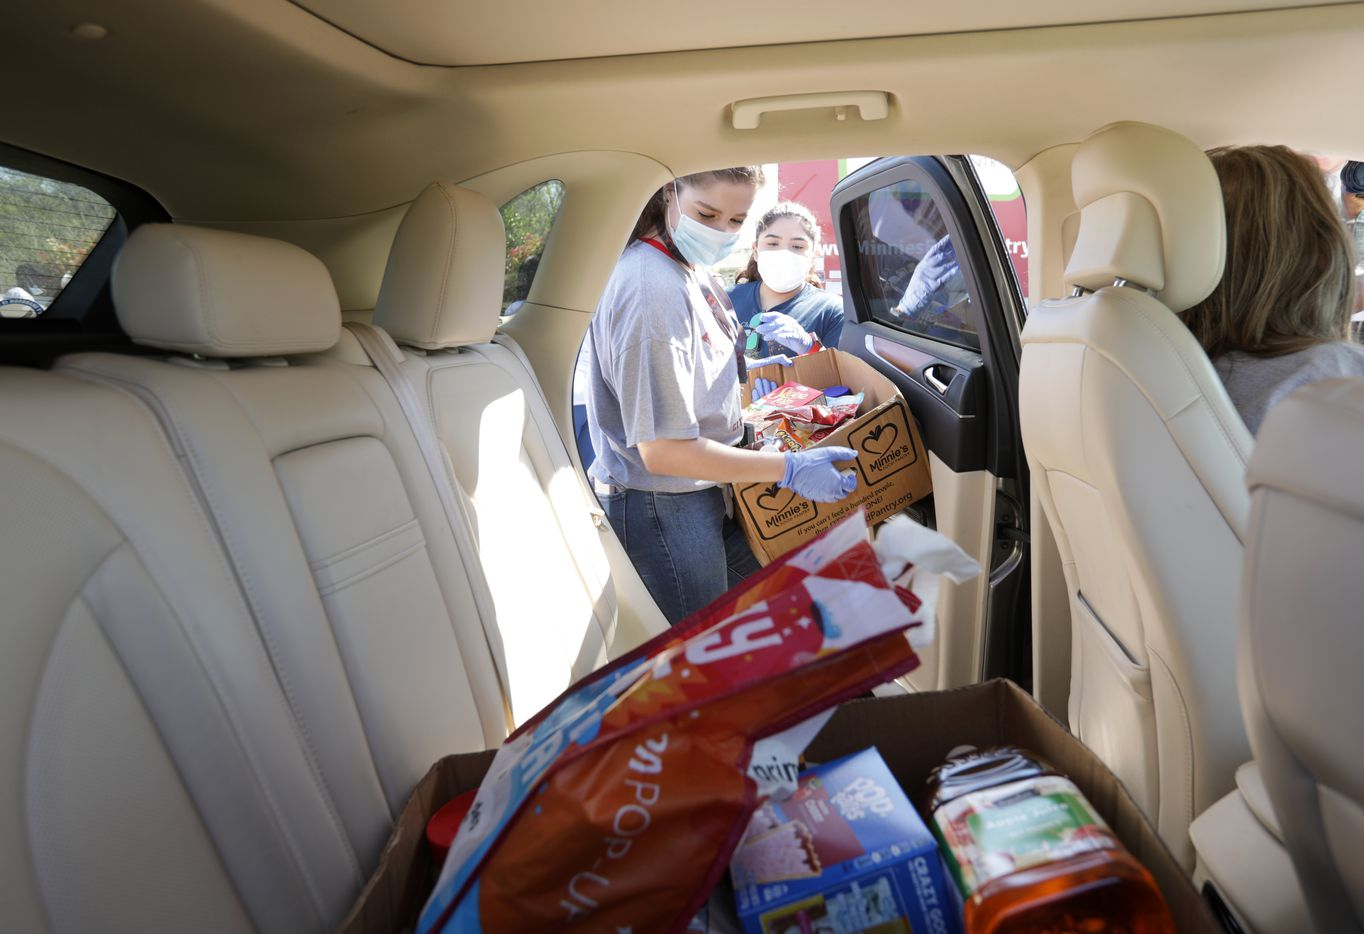 Hannah Nordstrom, a volunteers with Minnie's Food Pantry, loads a car with a meal box filled with groceries for families who are facing food insecurity during the coronavirus outbreak